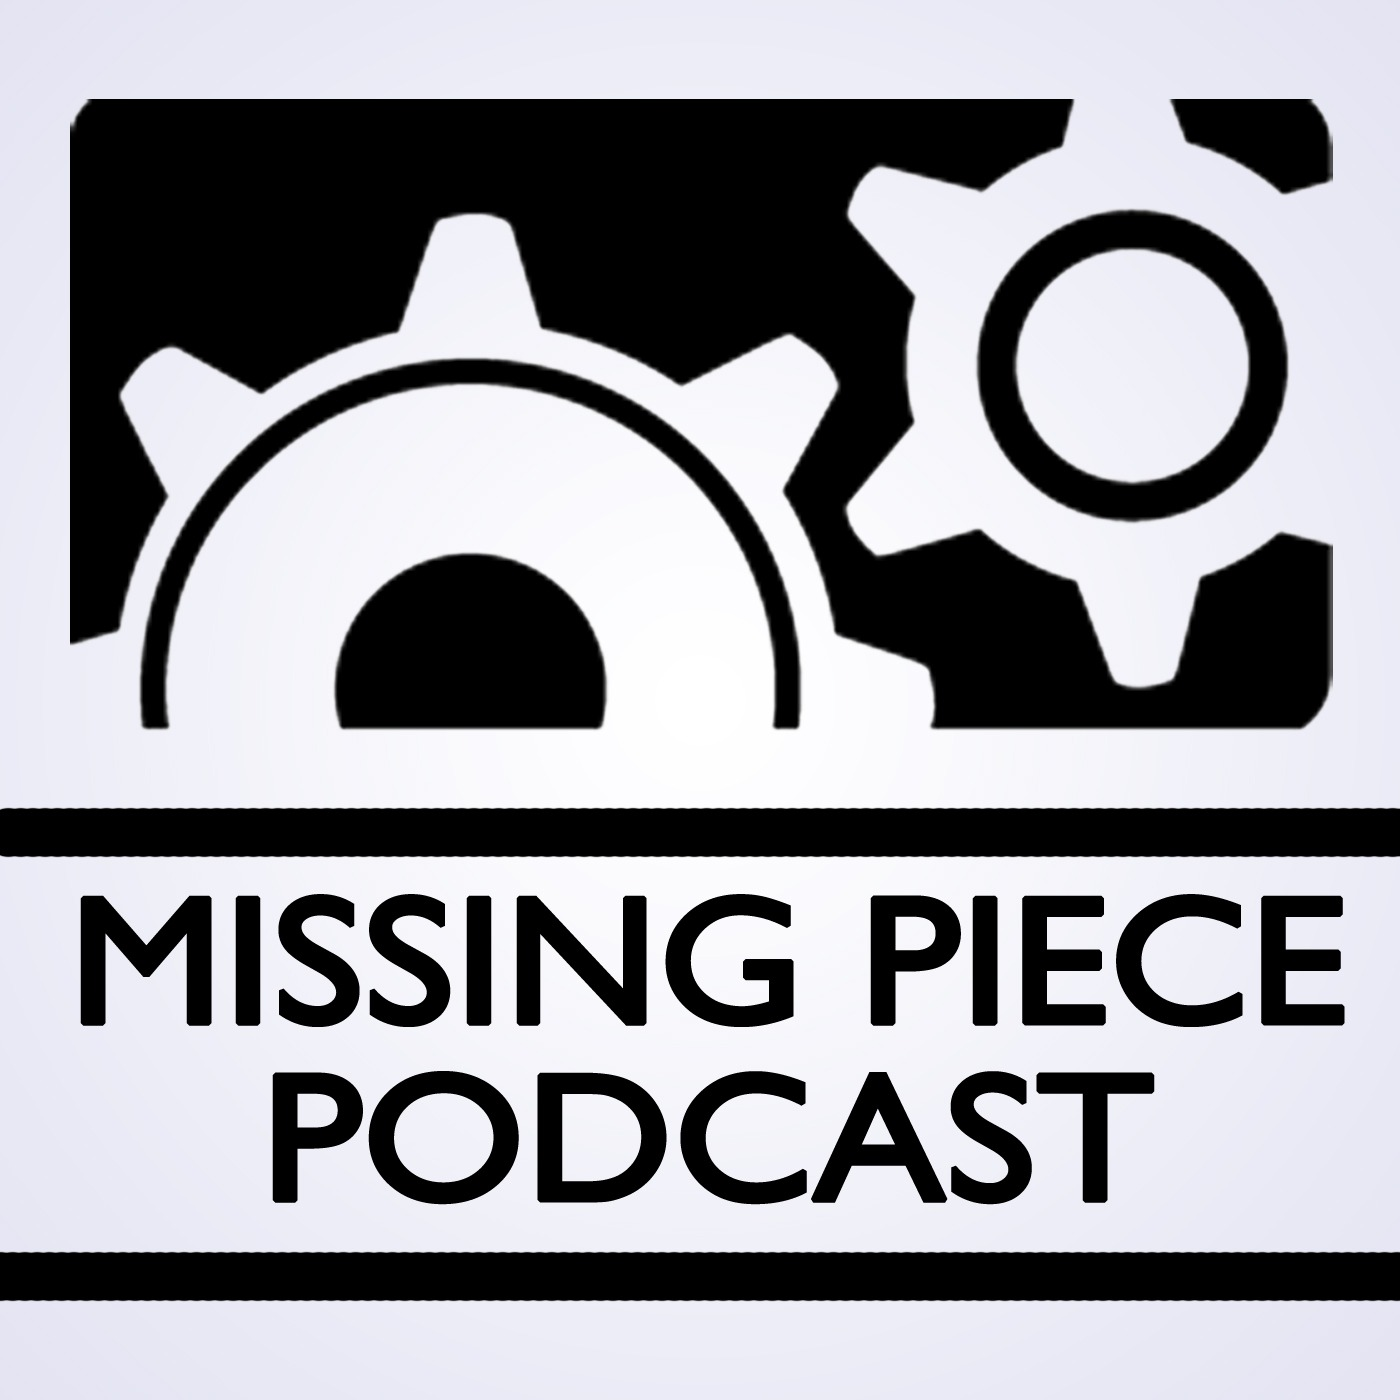 Missing Piece Podcast